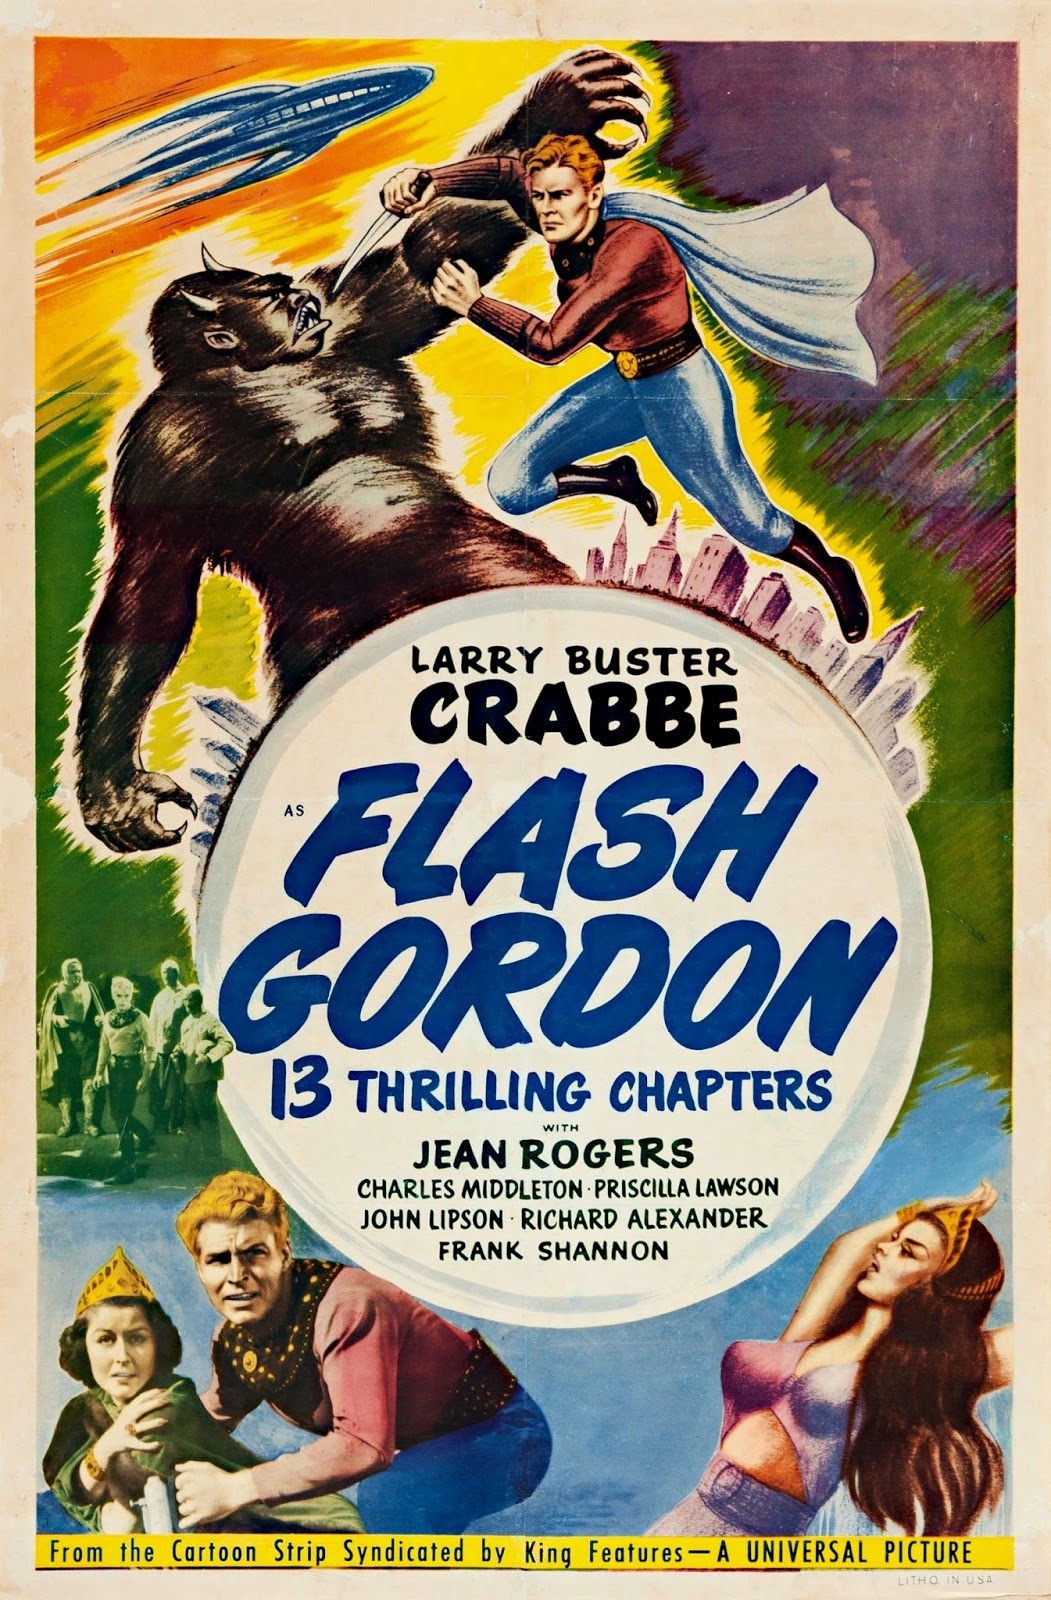 The Flash Gordon Serials (1936-1940) on FREECABLE TV